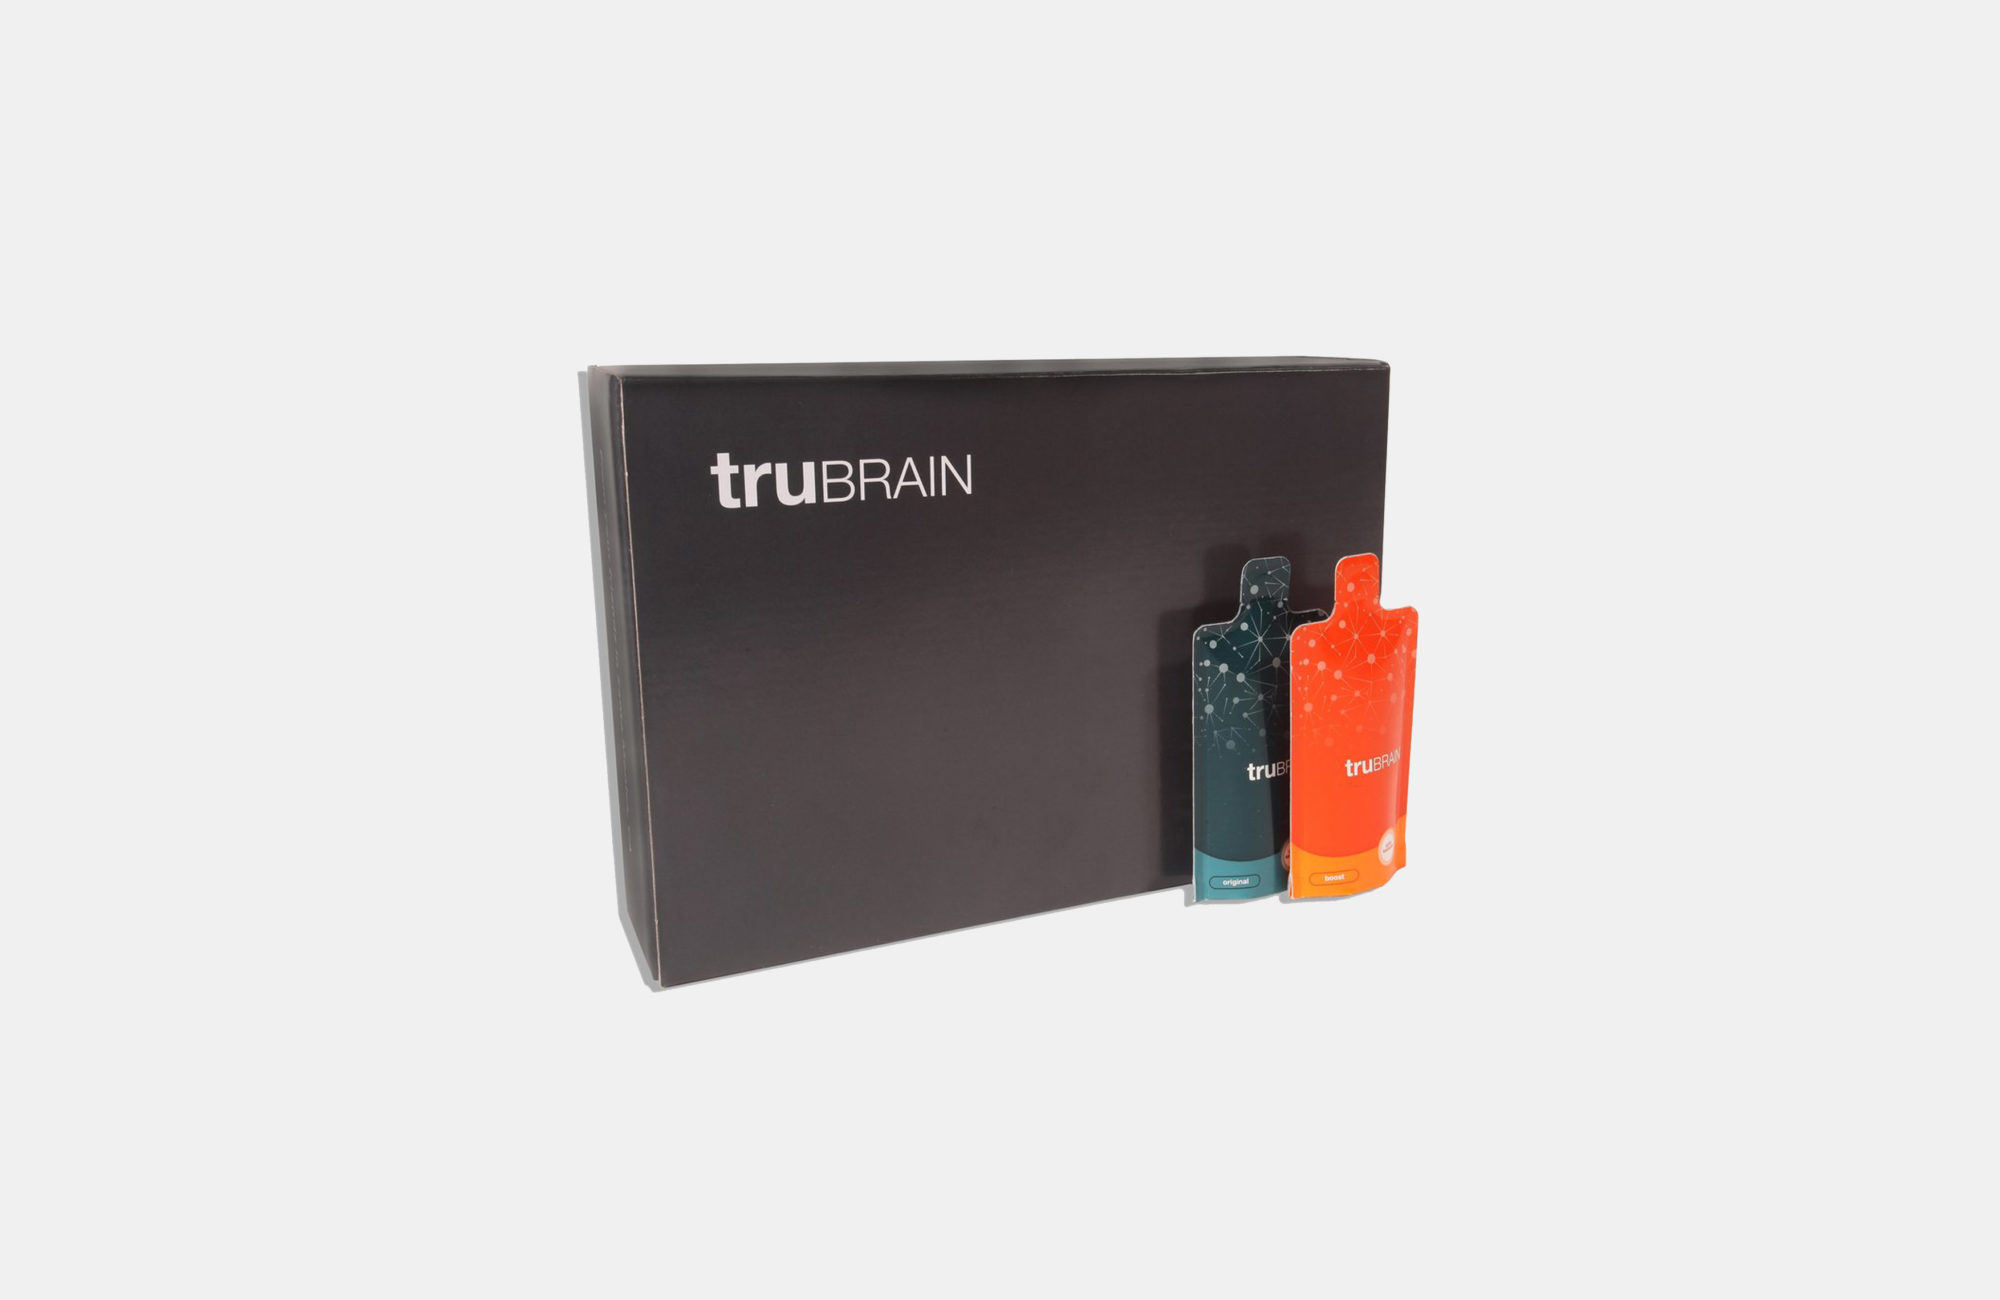 TRUBRAIN COGNITIVE ENHANCER AND BRAIN BOOSTER DRINK WITH NOOTROPICS